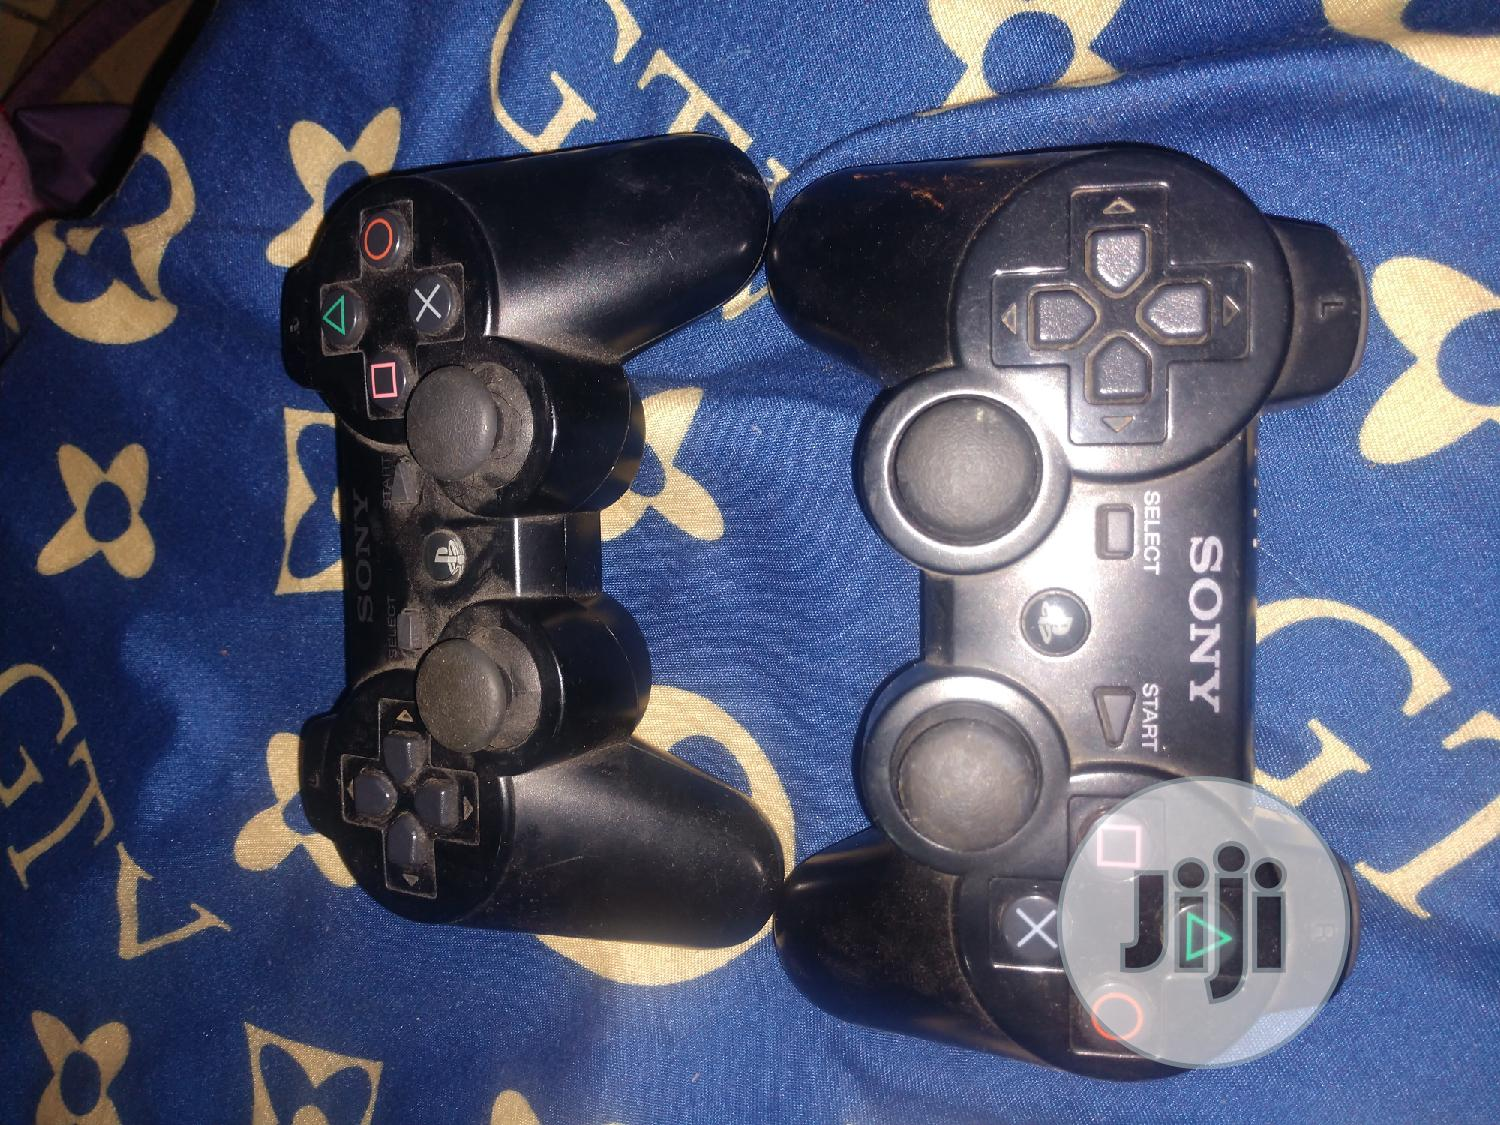 Dualshock 3 Pad (Playstation 3)